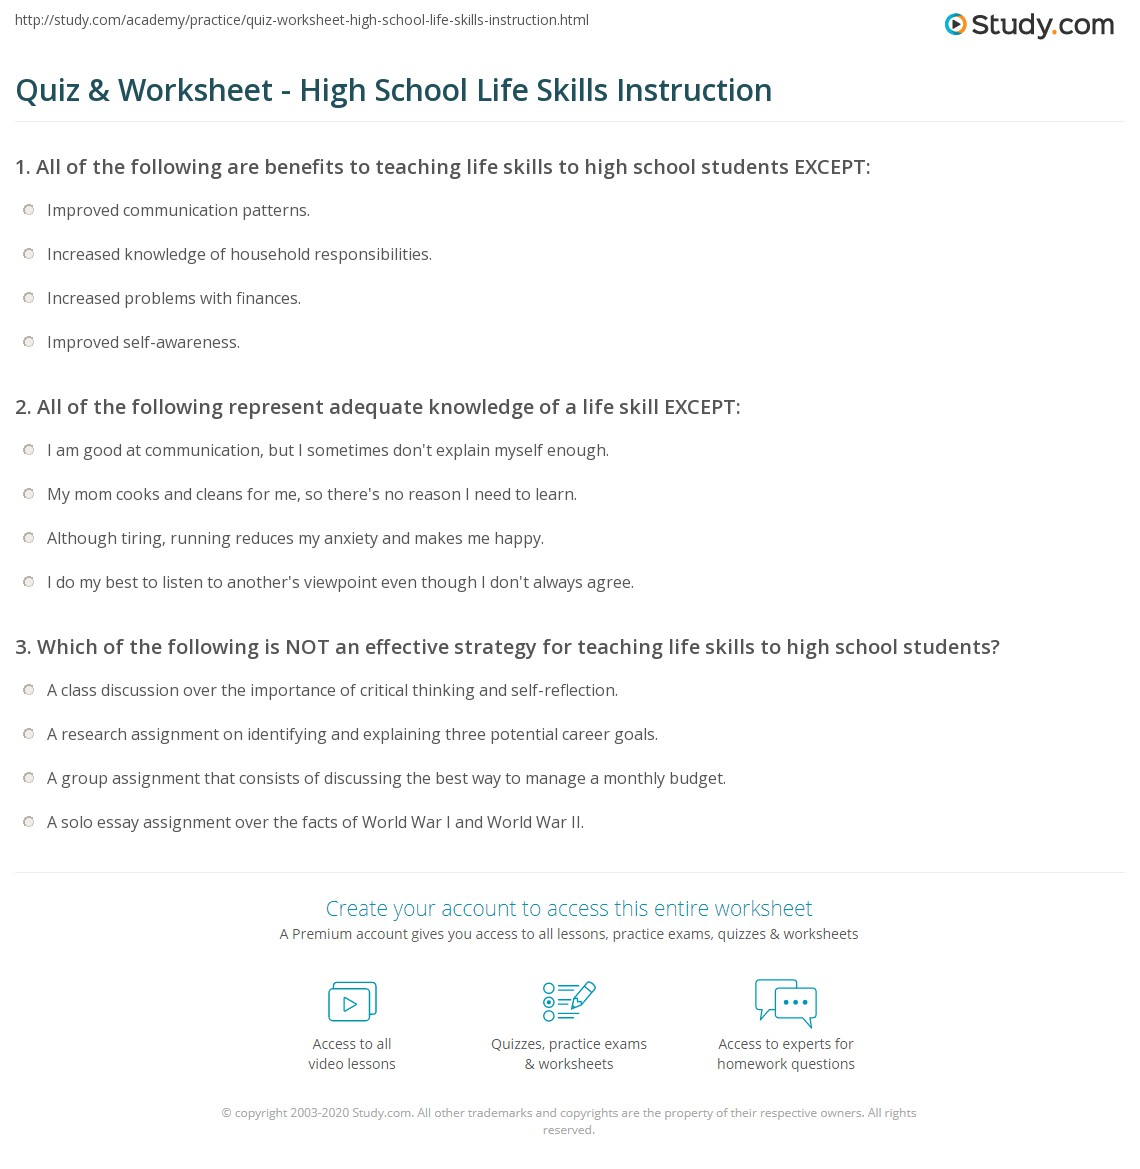 quiz worksheet high school life skills instruction com print teaching life skills to high school students worksheet